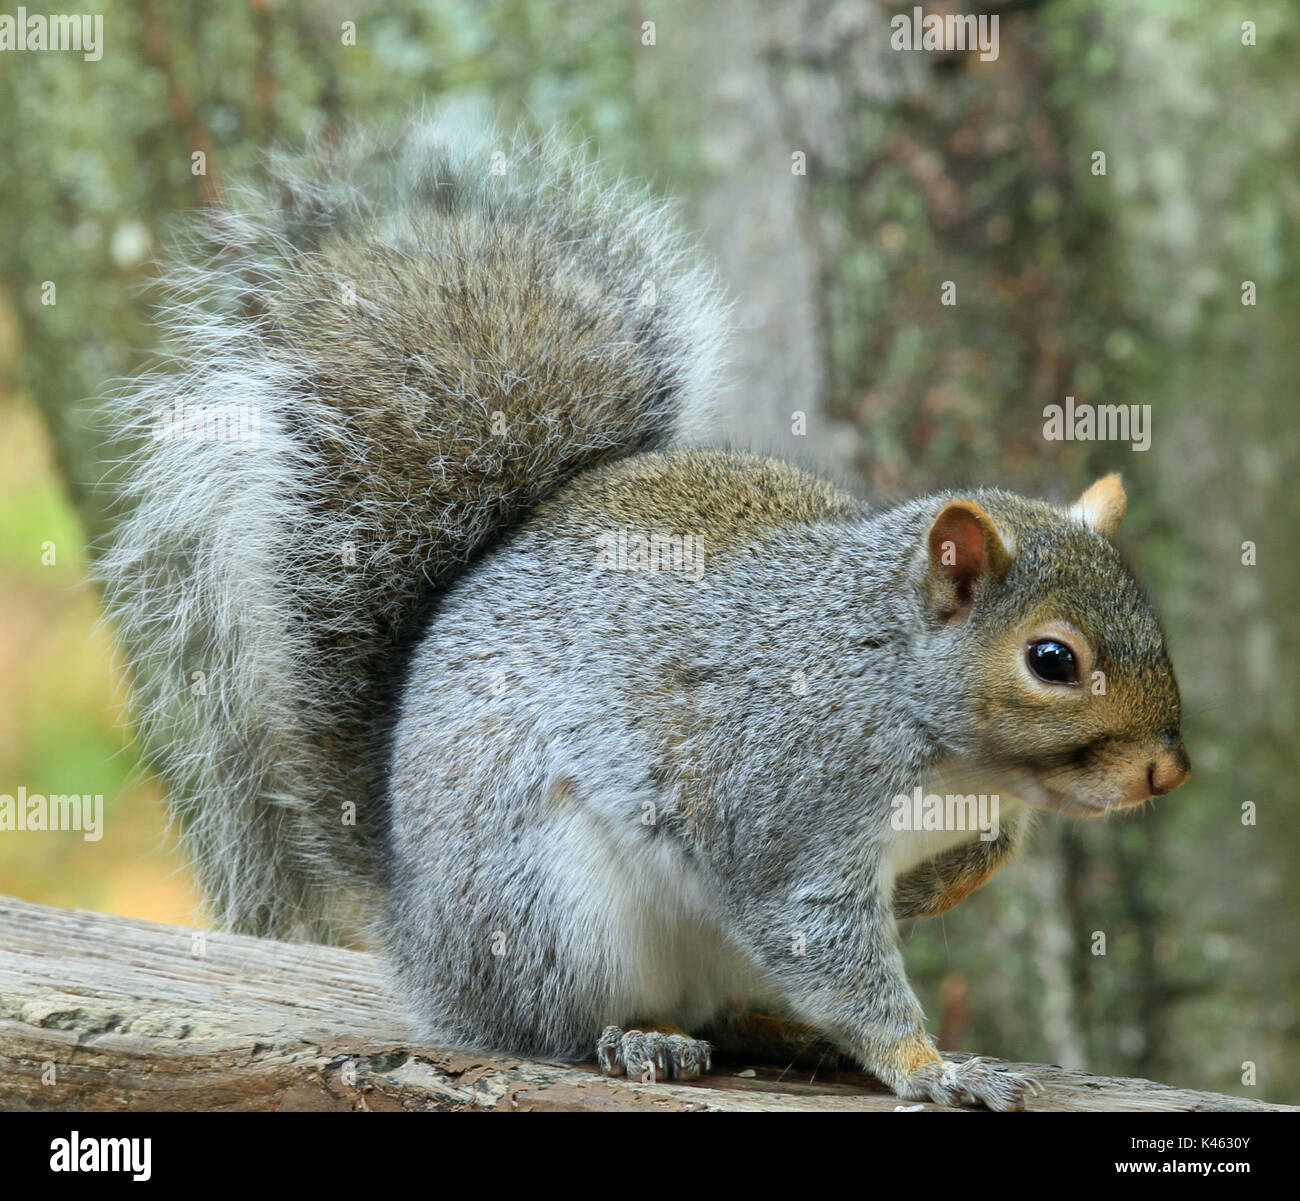 Close-up of a chubby Eastern gray squirrel (Sciurus carolinensis) sitting on a wooden deck railing Stock Photo